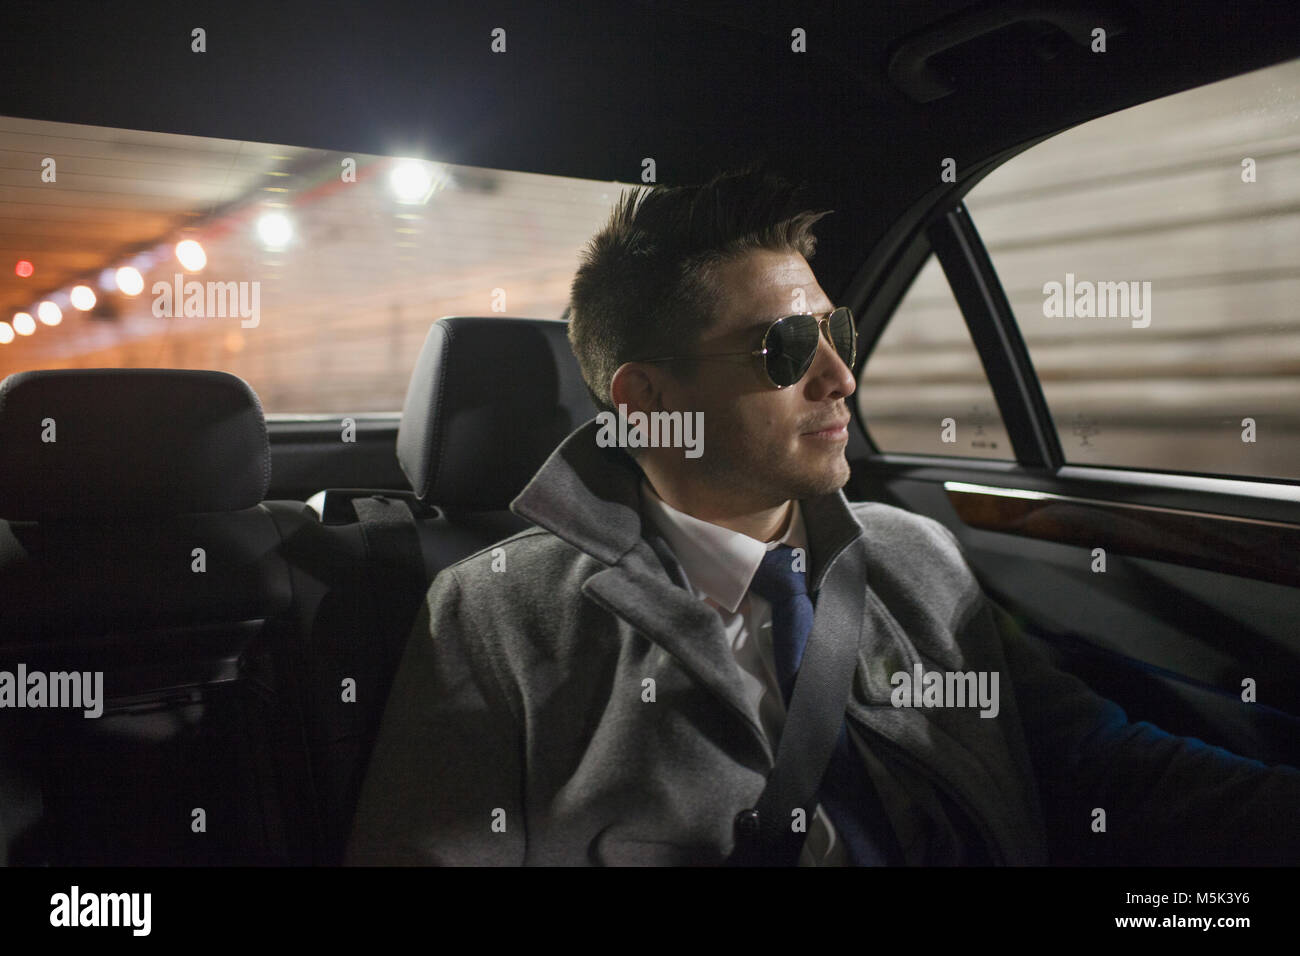 Young business man looking looking out the window sitting in car service limousine - Stock Image